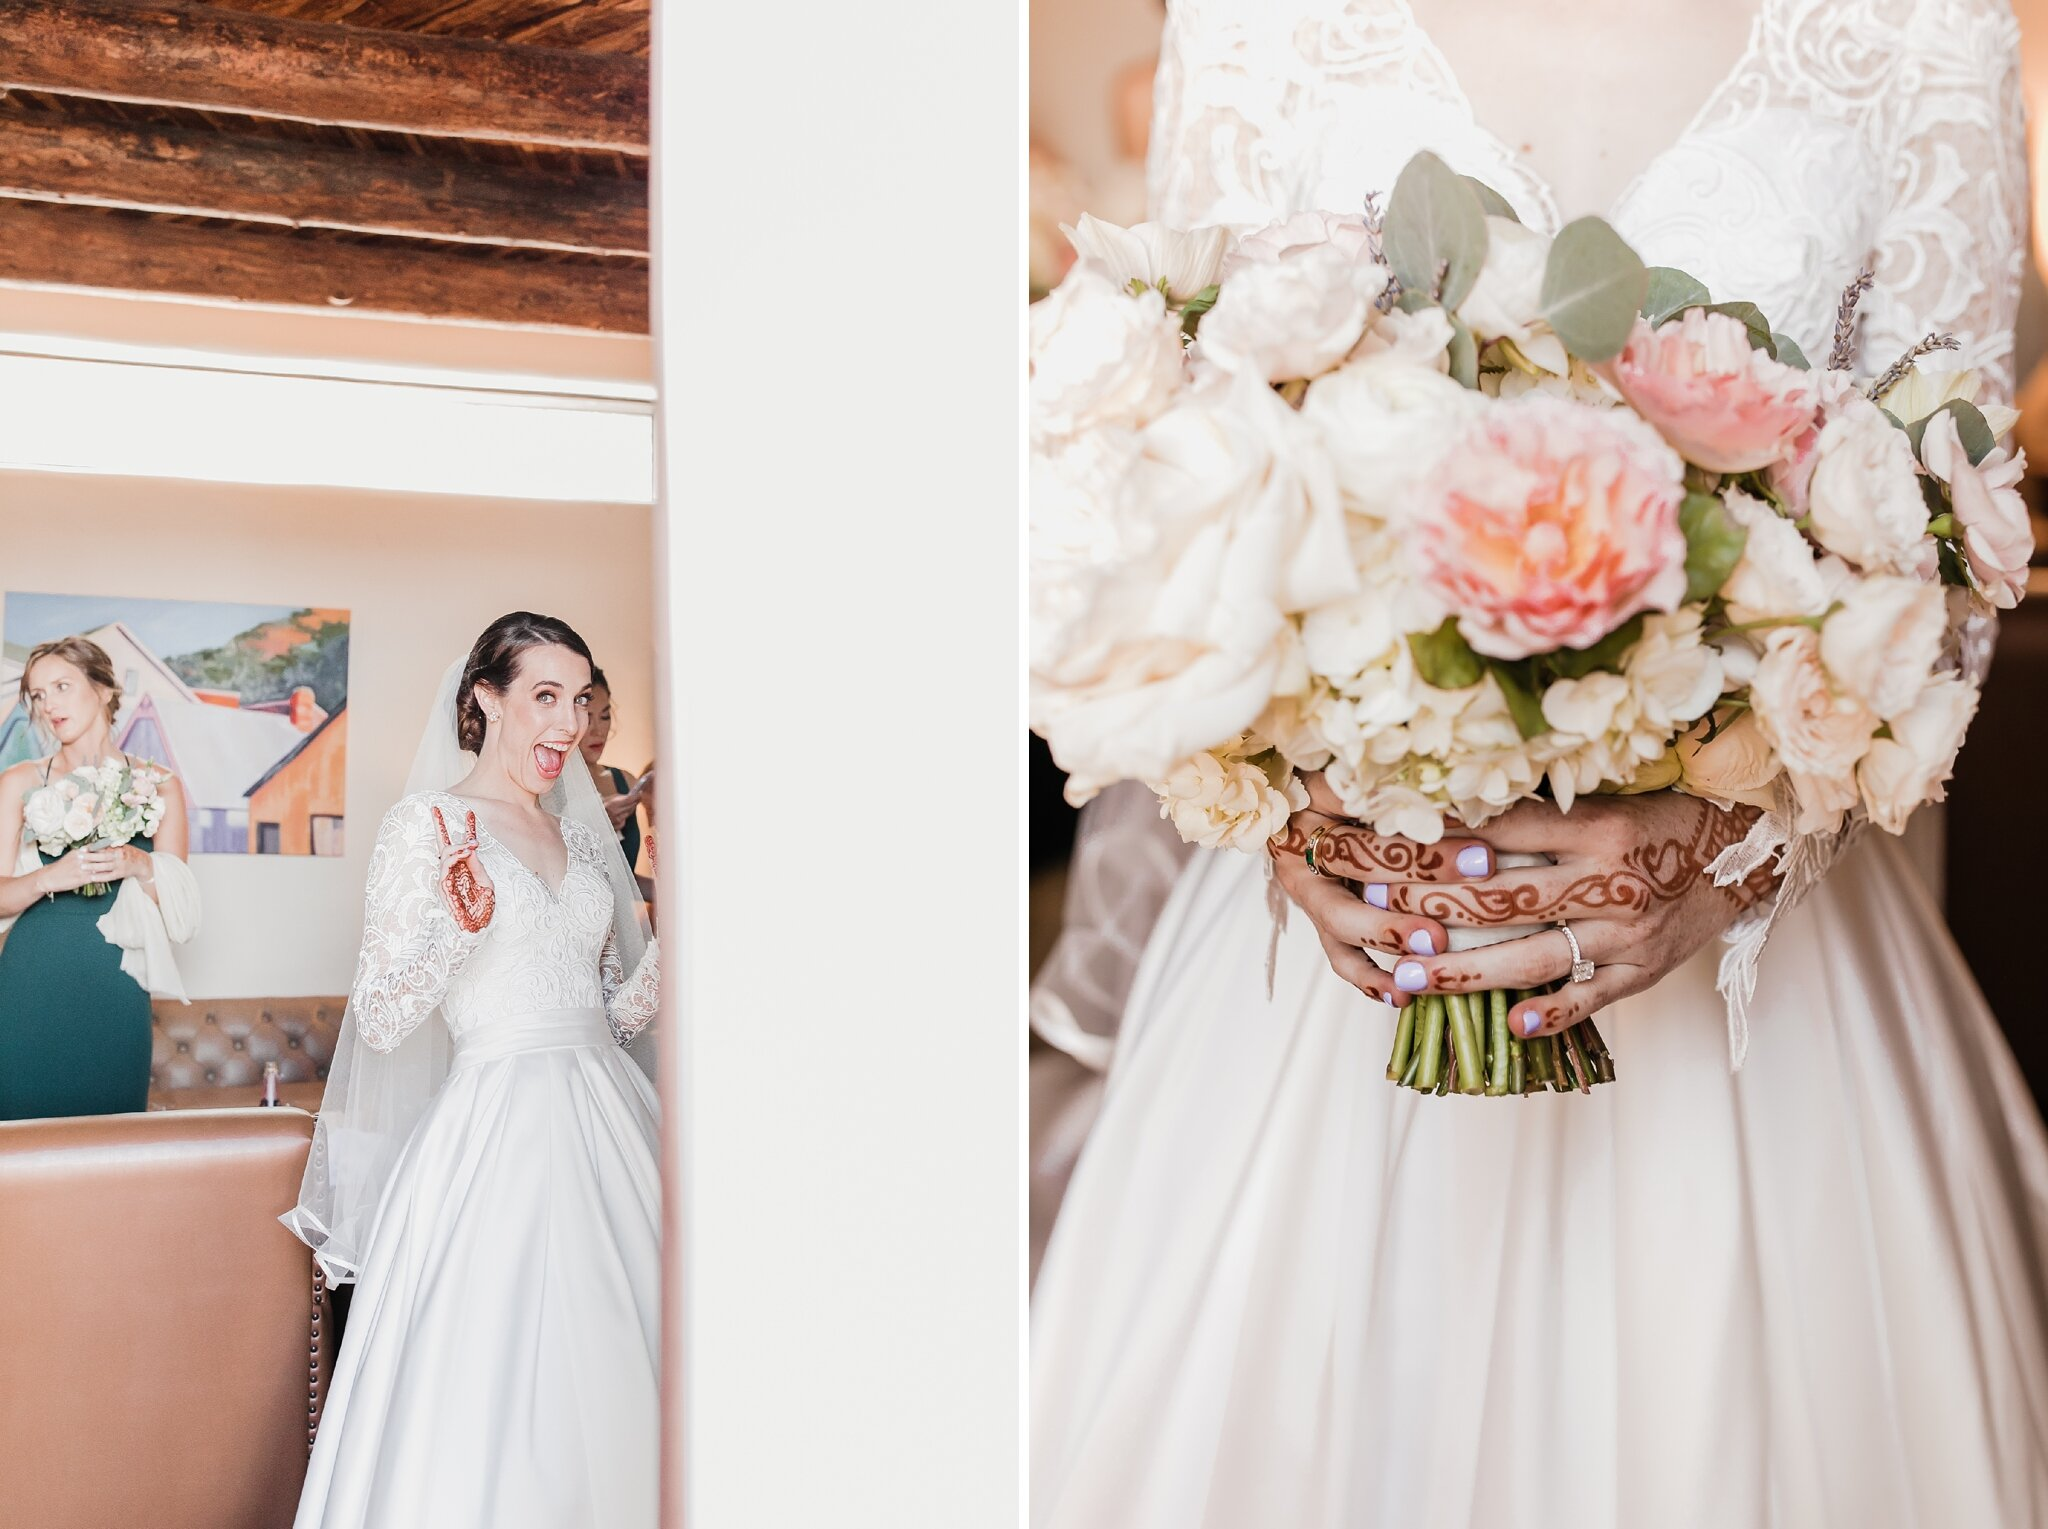 Alicia+lucia+photography+-+albuquerque+wedding+photographer+-+santa+fe+wedding+photography+-+new+mexico+wedding+photographer+-+new+mexico+wedding+-+hindu+wedding+-+catholic+wedding+-+multicultural+wedding+-+santa+fe+wedding_0016.jpg